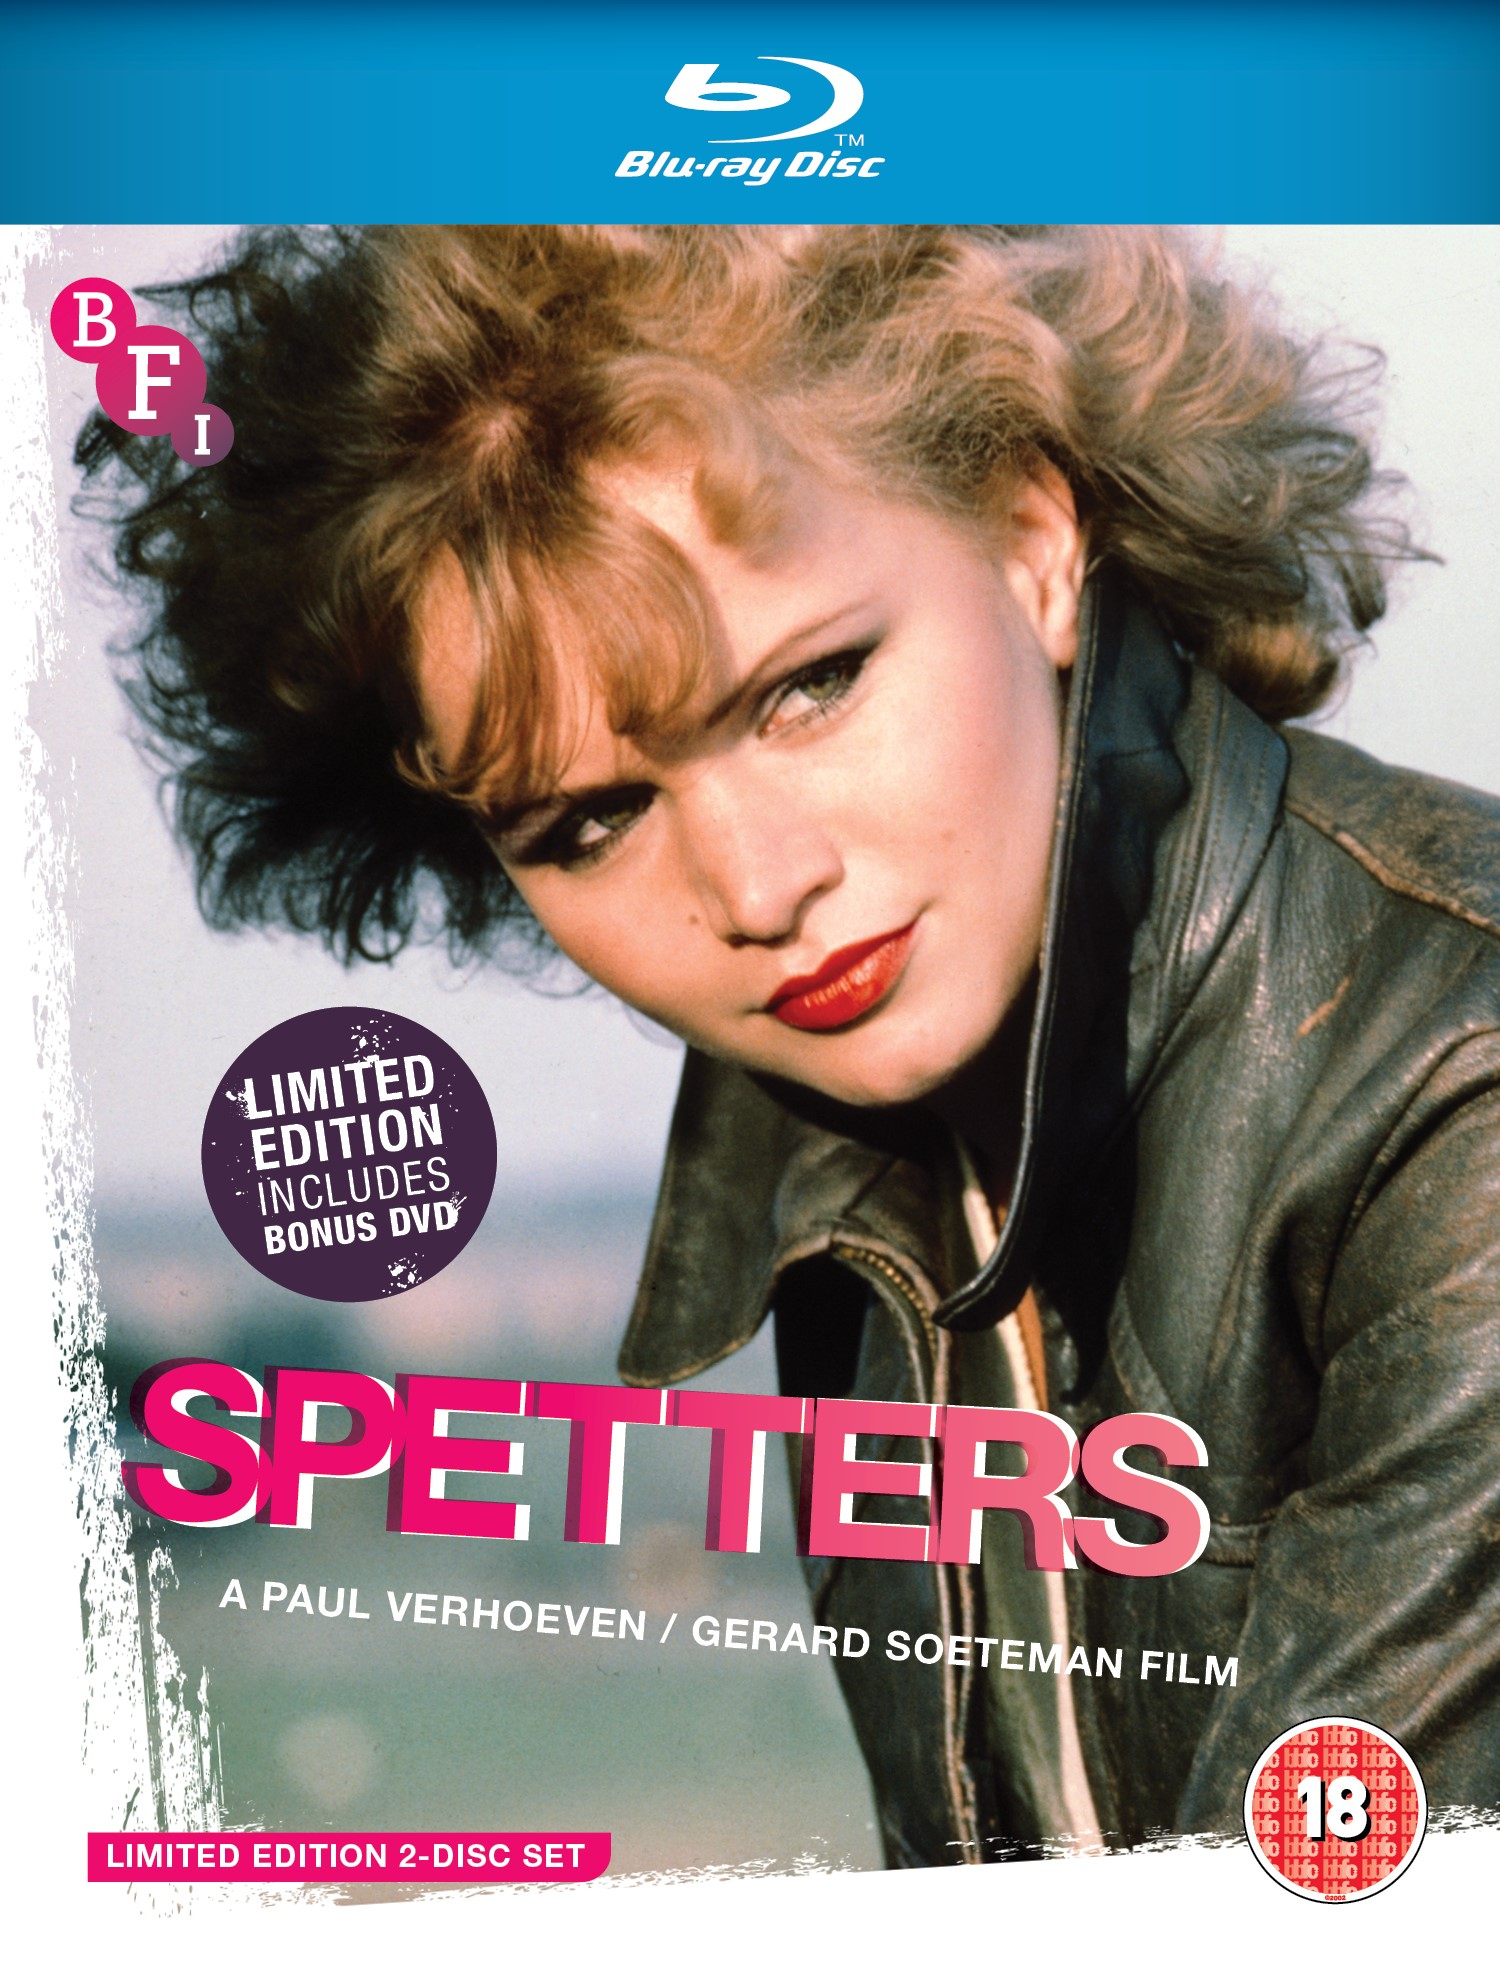 Buy PRE-ORDER Spetters (Limited Edition 2 disc Blu-ray / DVD set)